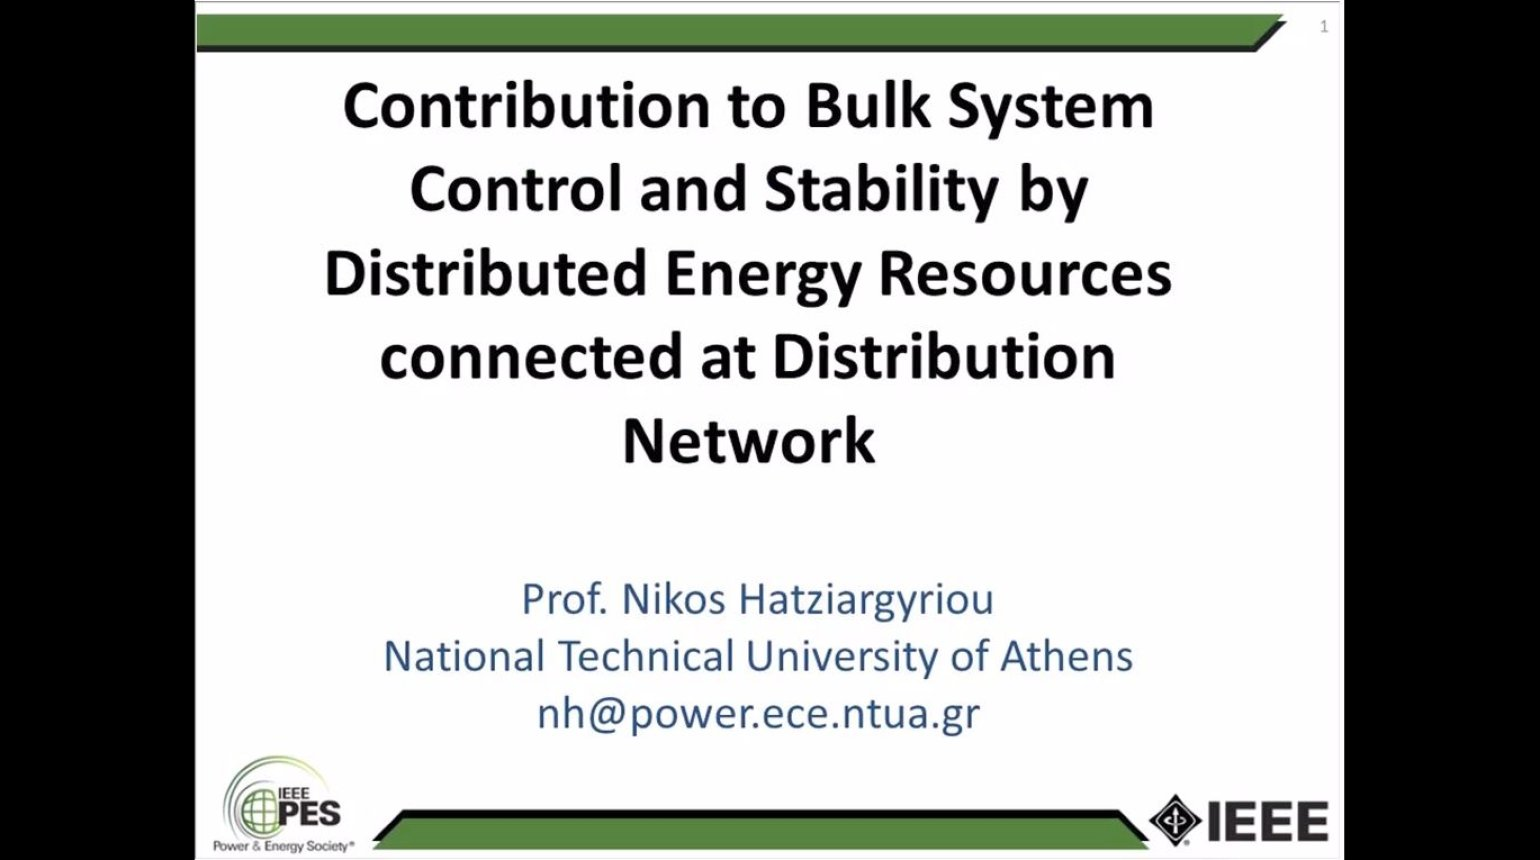 Contribution to Bulk System Control and Stability by DER Connected at Distribution Network